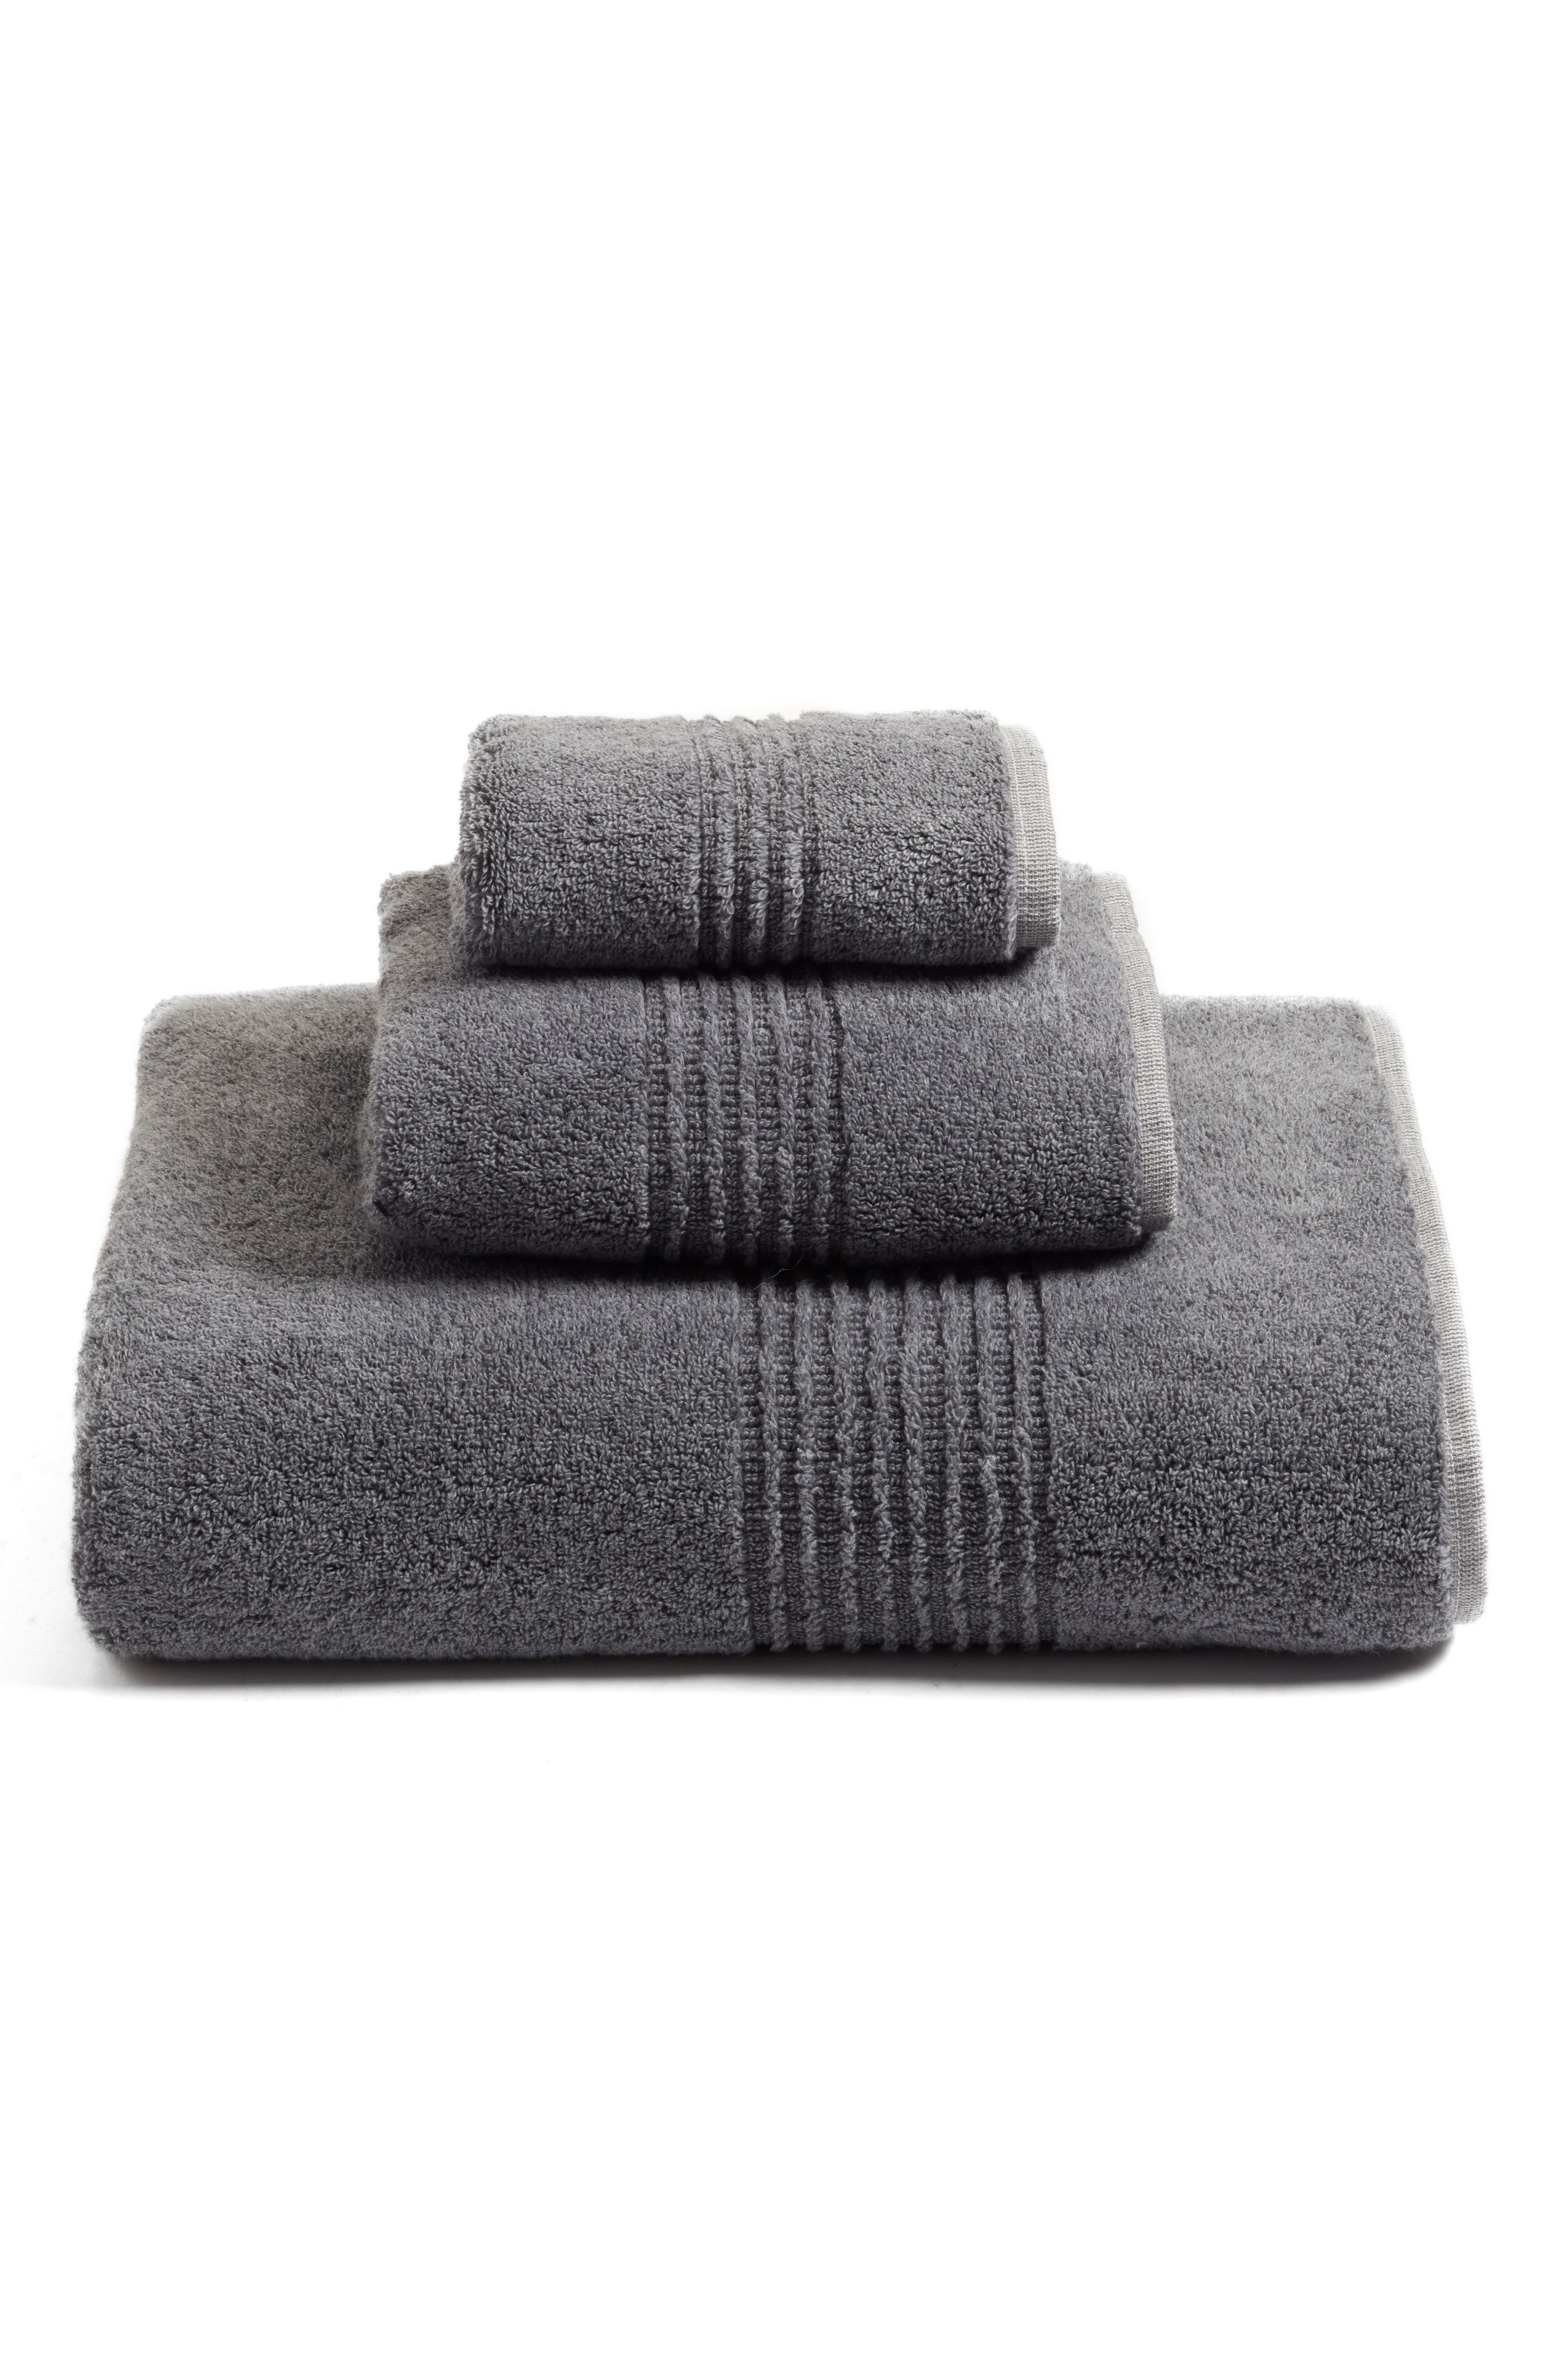 Organic Hydrocotton Heathered Hand Towel,                             Alternate thumbnail 2, color,                             021